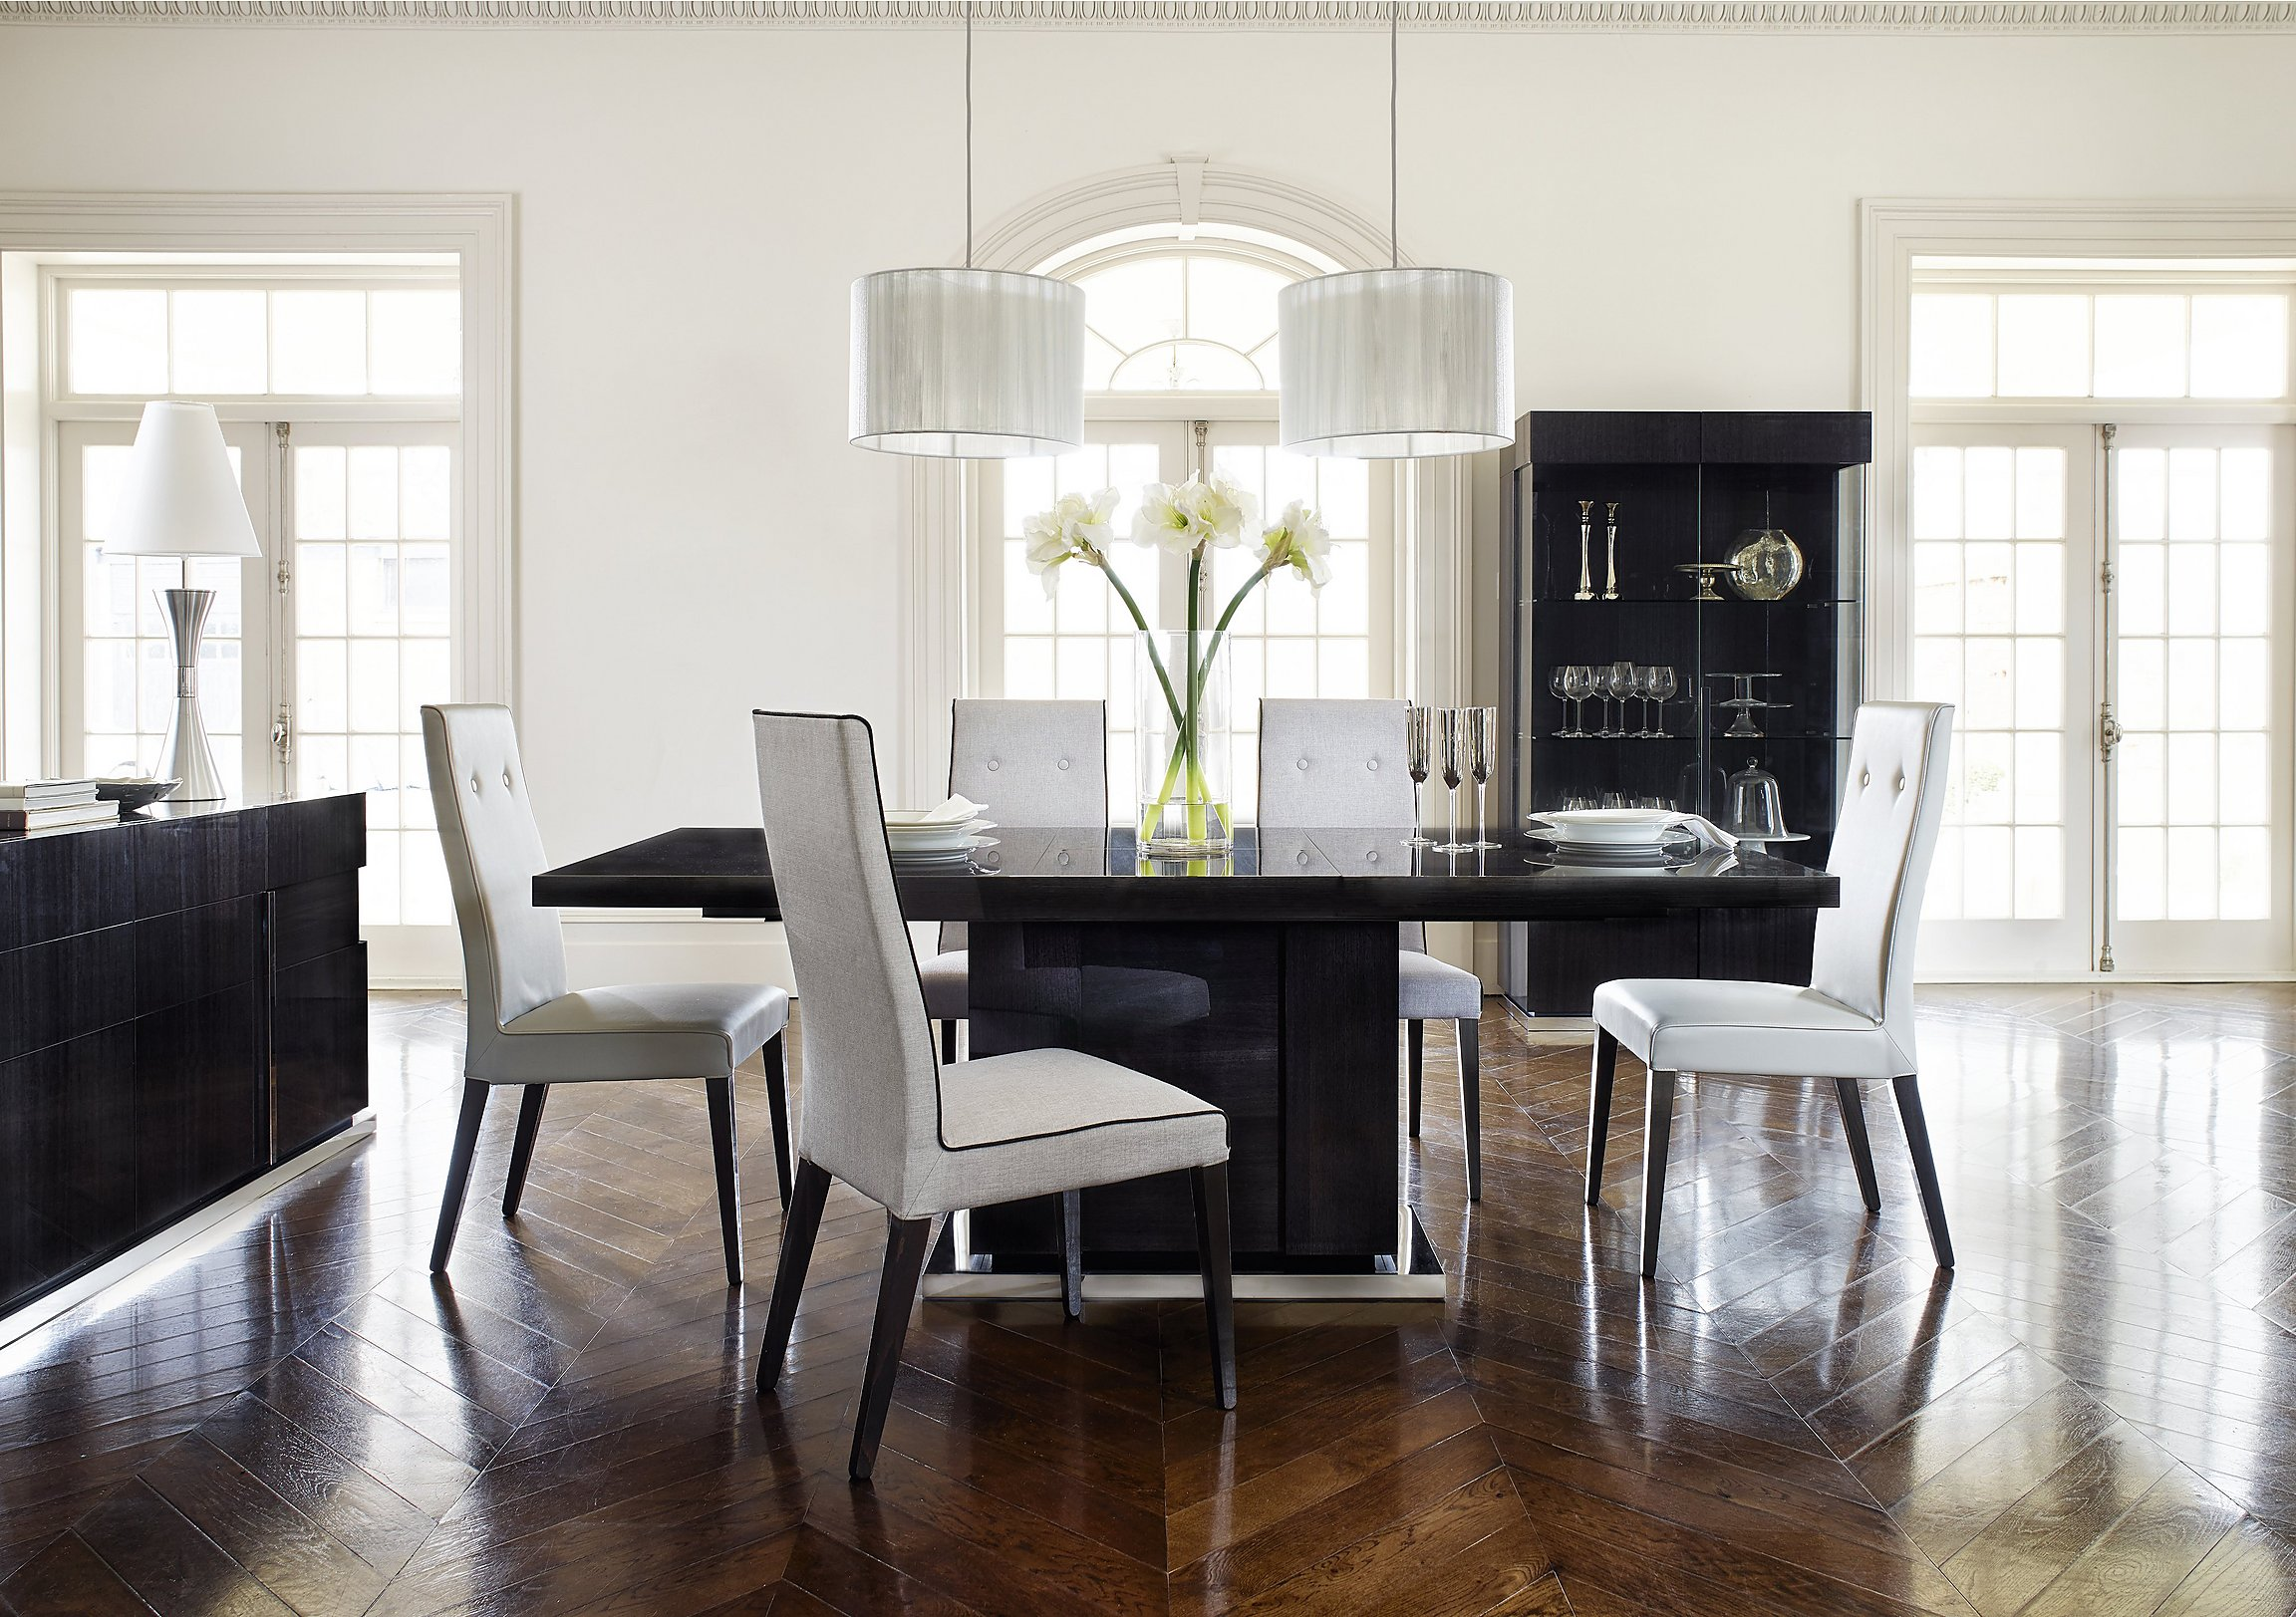 Extendable Dining Table Furniture Village. extending dining tables ...